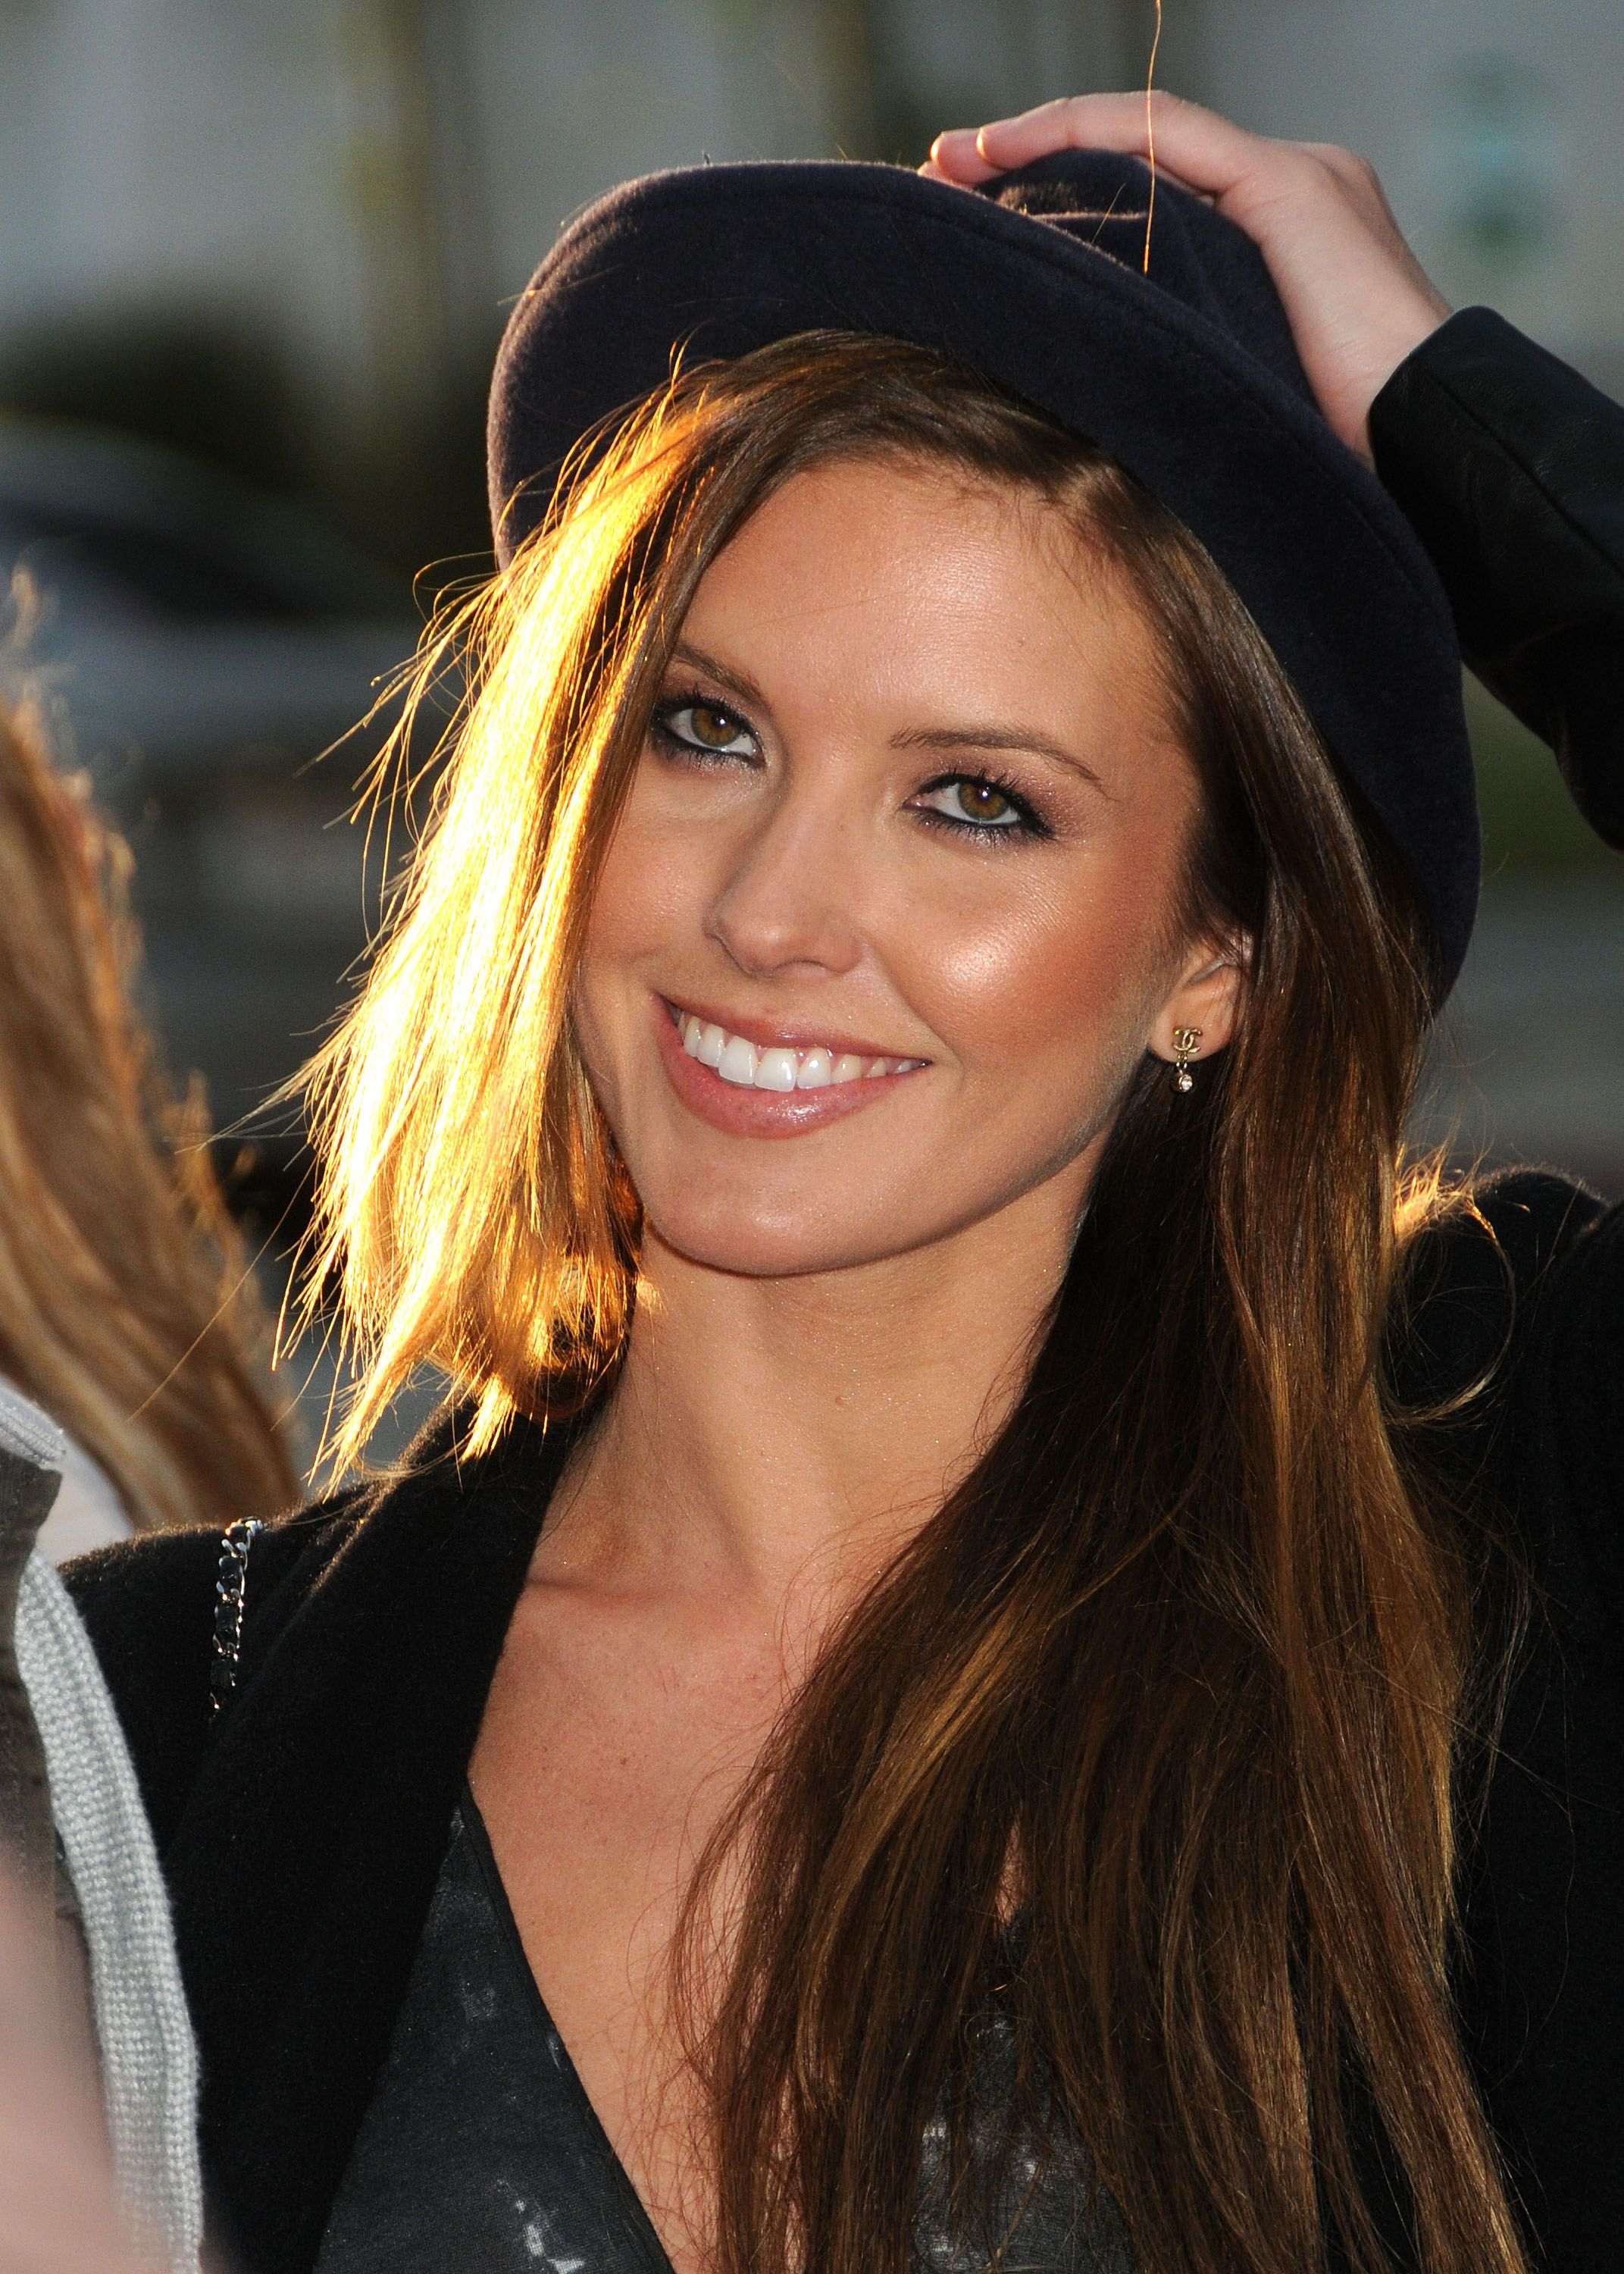 Audrina Patridge Why Dont Pictures Of Me Look Like These